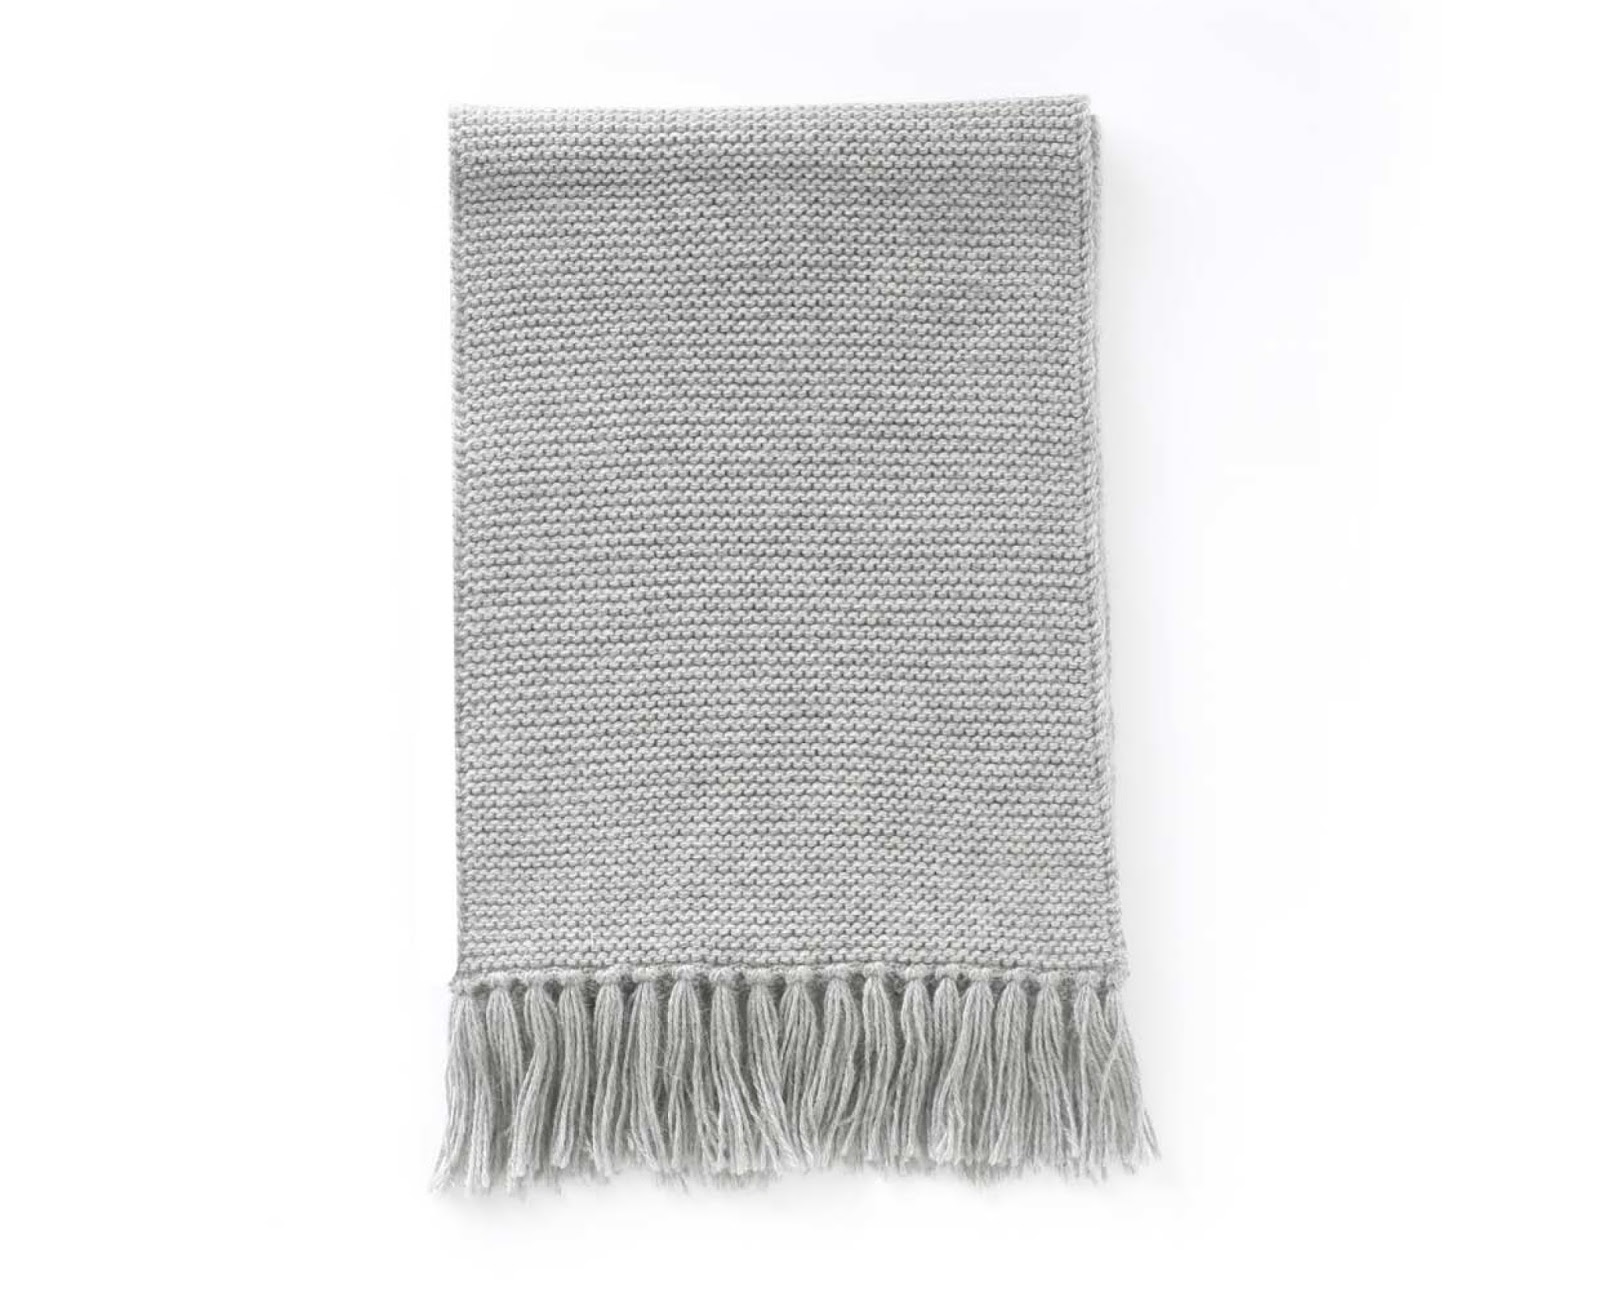 COLLECTIVE+AW13+Knit+Scarf+%C2%A3135.jpg